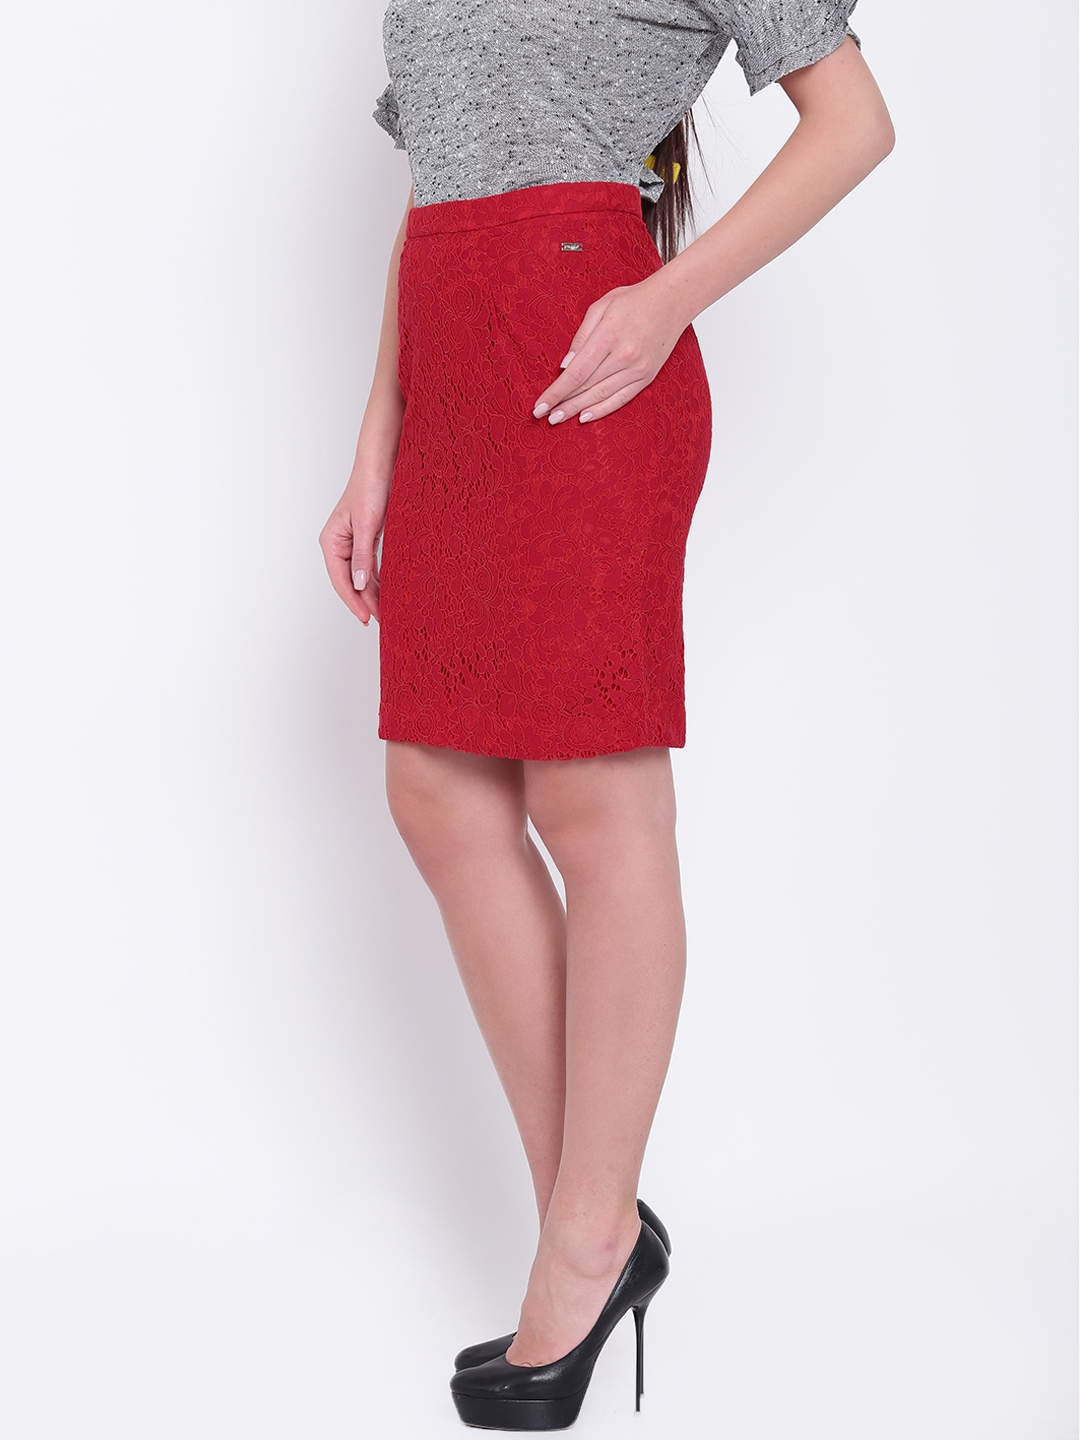 856f044f9 Buy Park Avenue Woman Red Lace Pencil Skirt - Skirts for Women ...